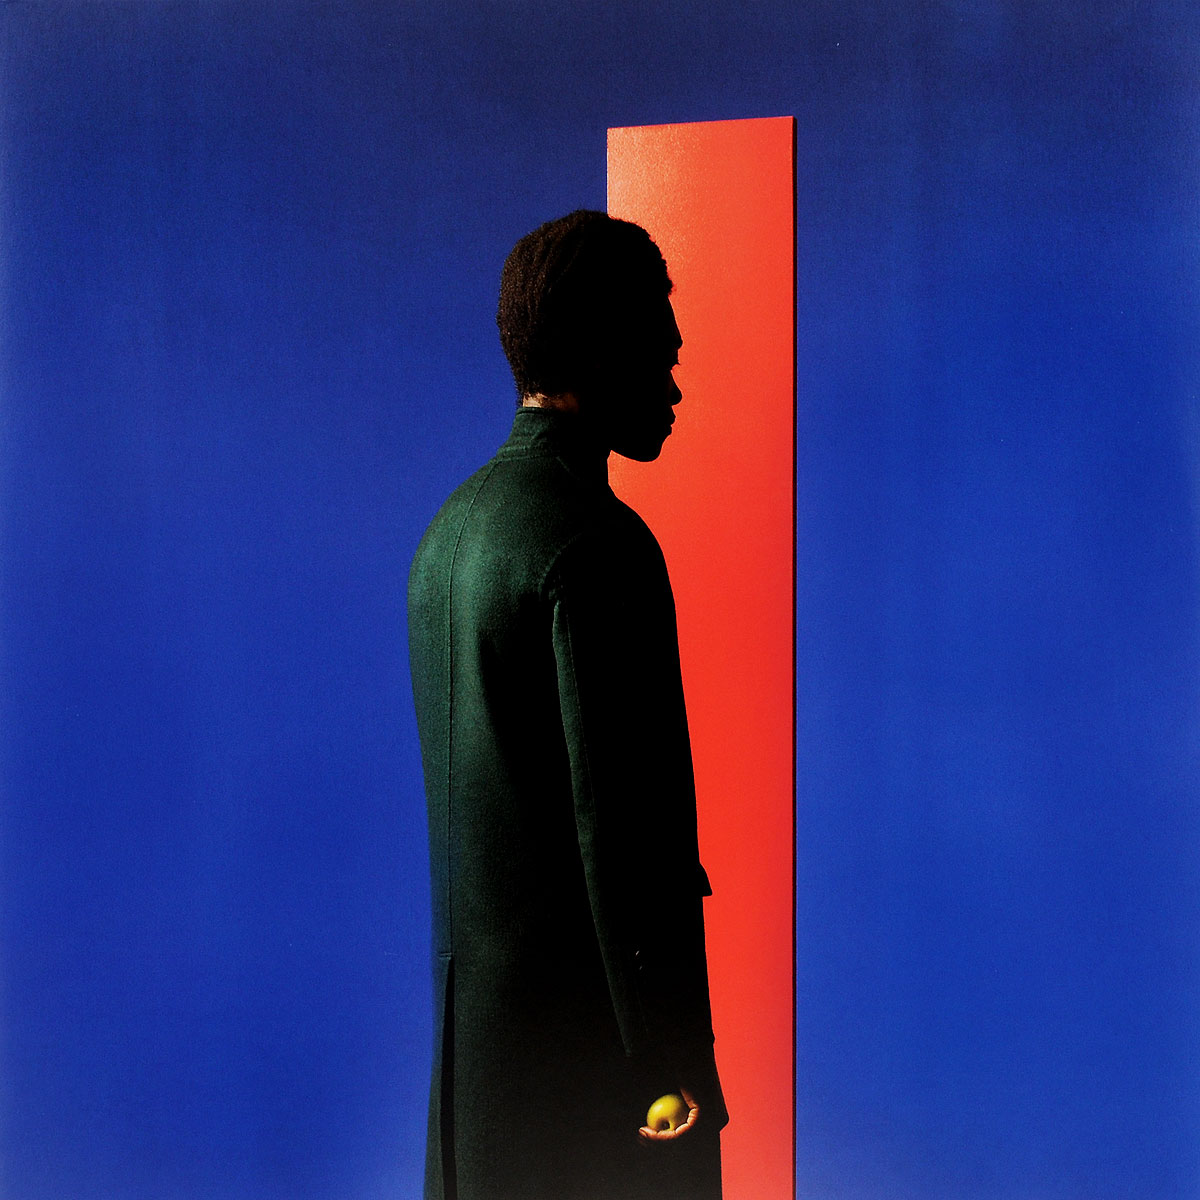 Benjamin Clementine Benjamin Clementine. At Least For Now (2 LP) фил коллинз phil collins take a look at me now 3 lp